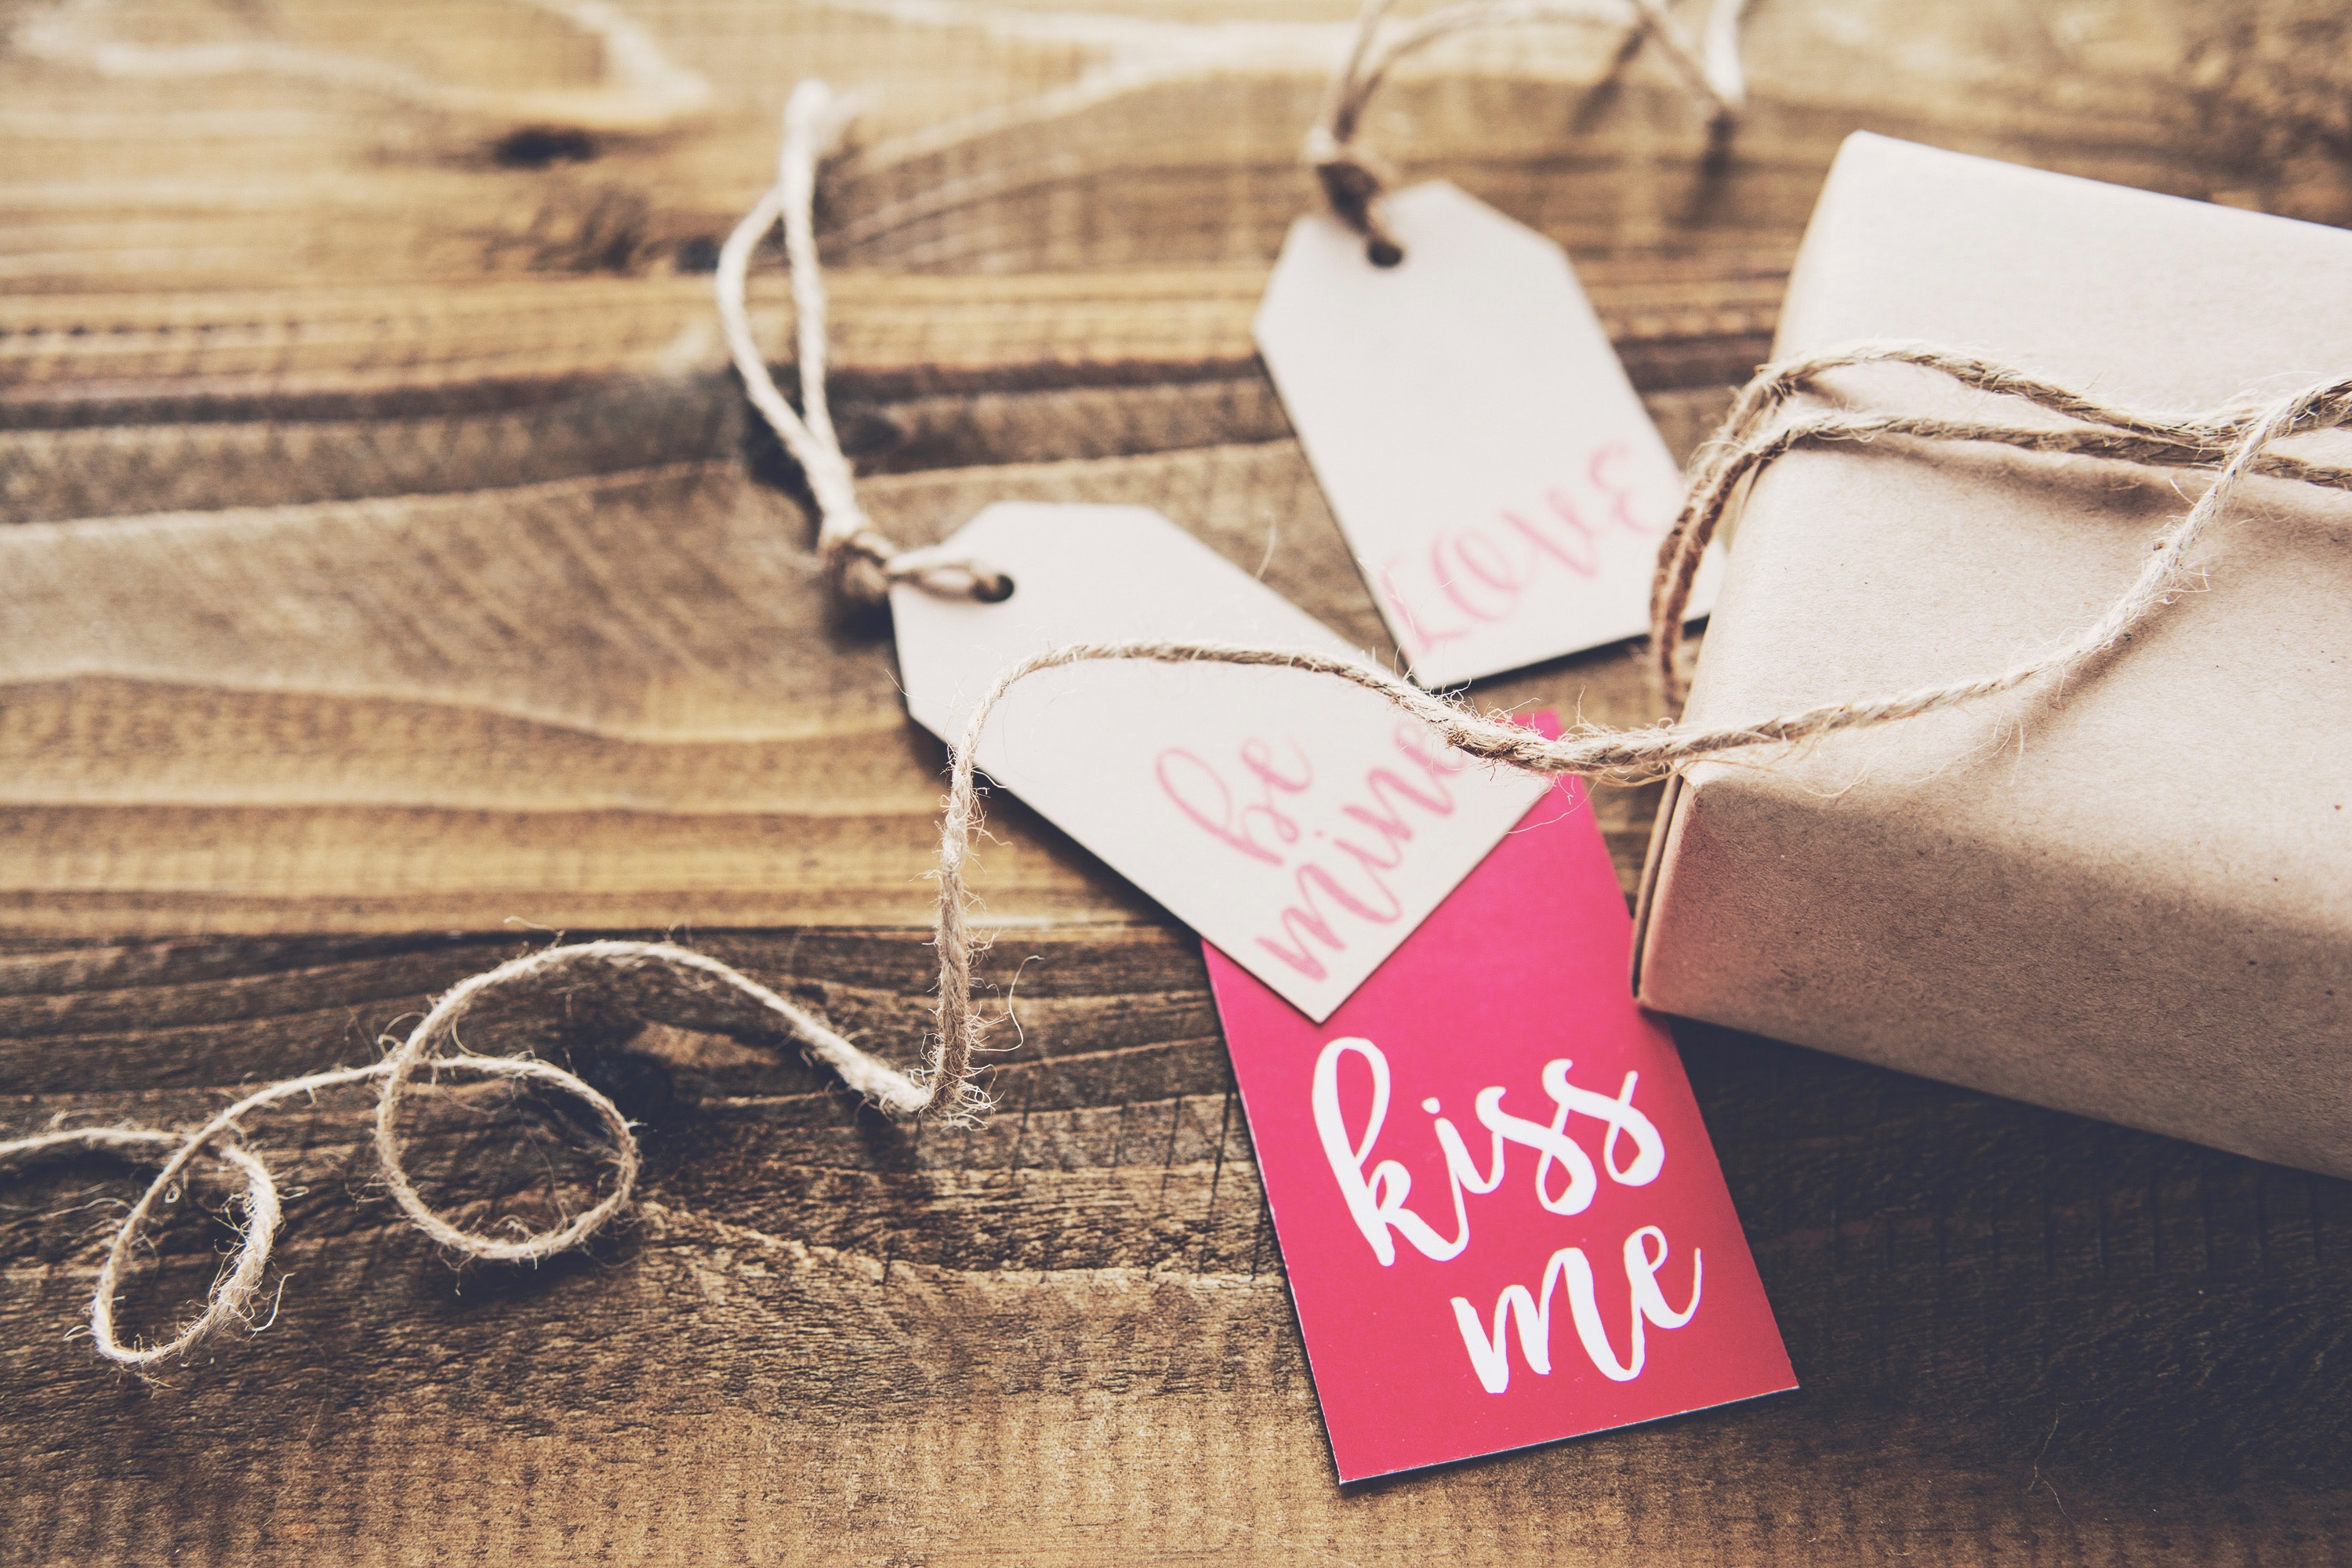 Charm Couples Wedding Shower Gift Ideas Day 2017 Gift Ideas New Couples Gift Ideas Couples Wedding wedding gifts Gift Ideas For Couples